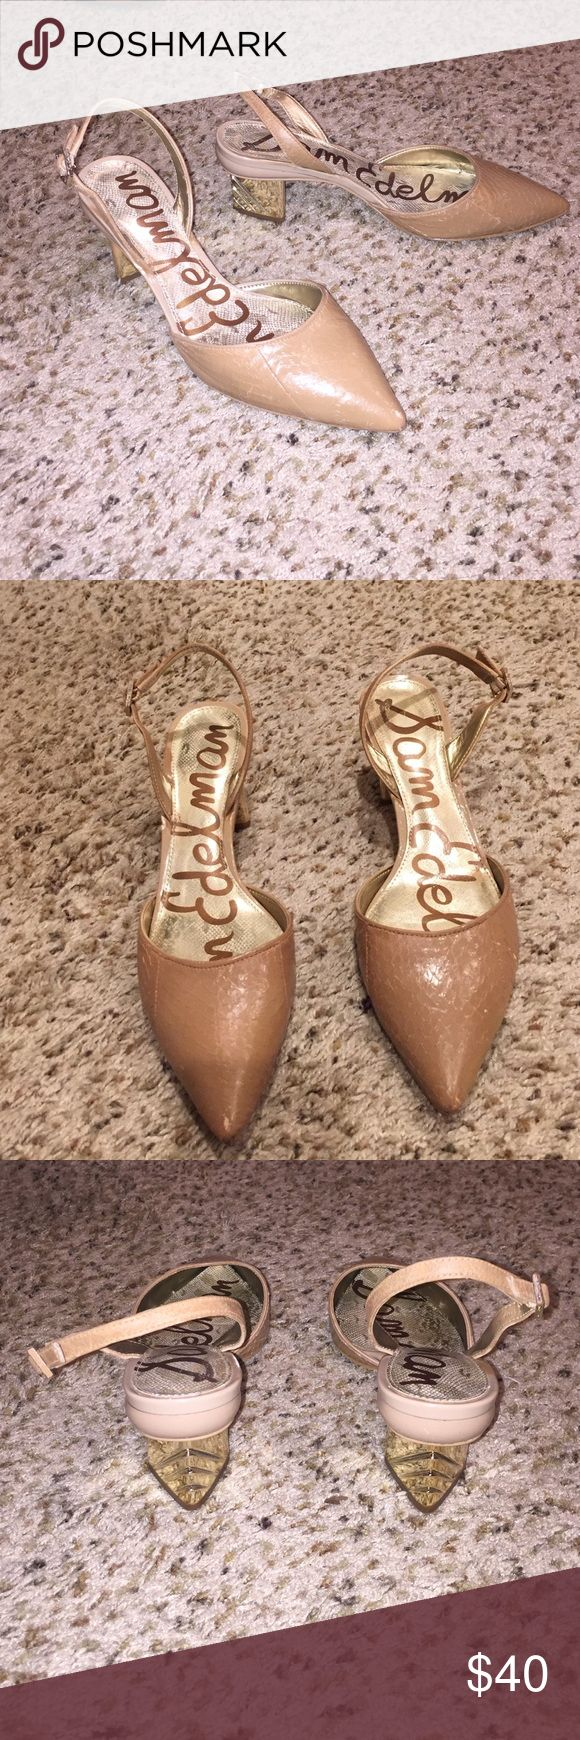 SAM EDELMAN HEELS! MAKE ANY OFFER Adorable SAM EDELMAN HEELS WITH SUCH A CUTE CHUNK HEEL! these are my absolute favorite shoes they are just too small! Sam Edelman Shoes Heels